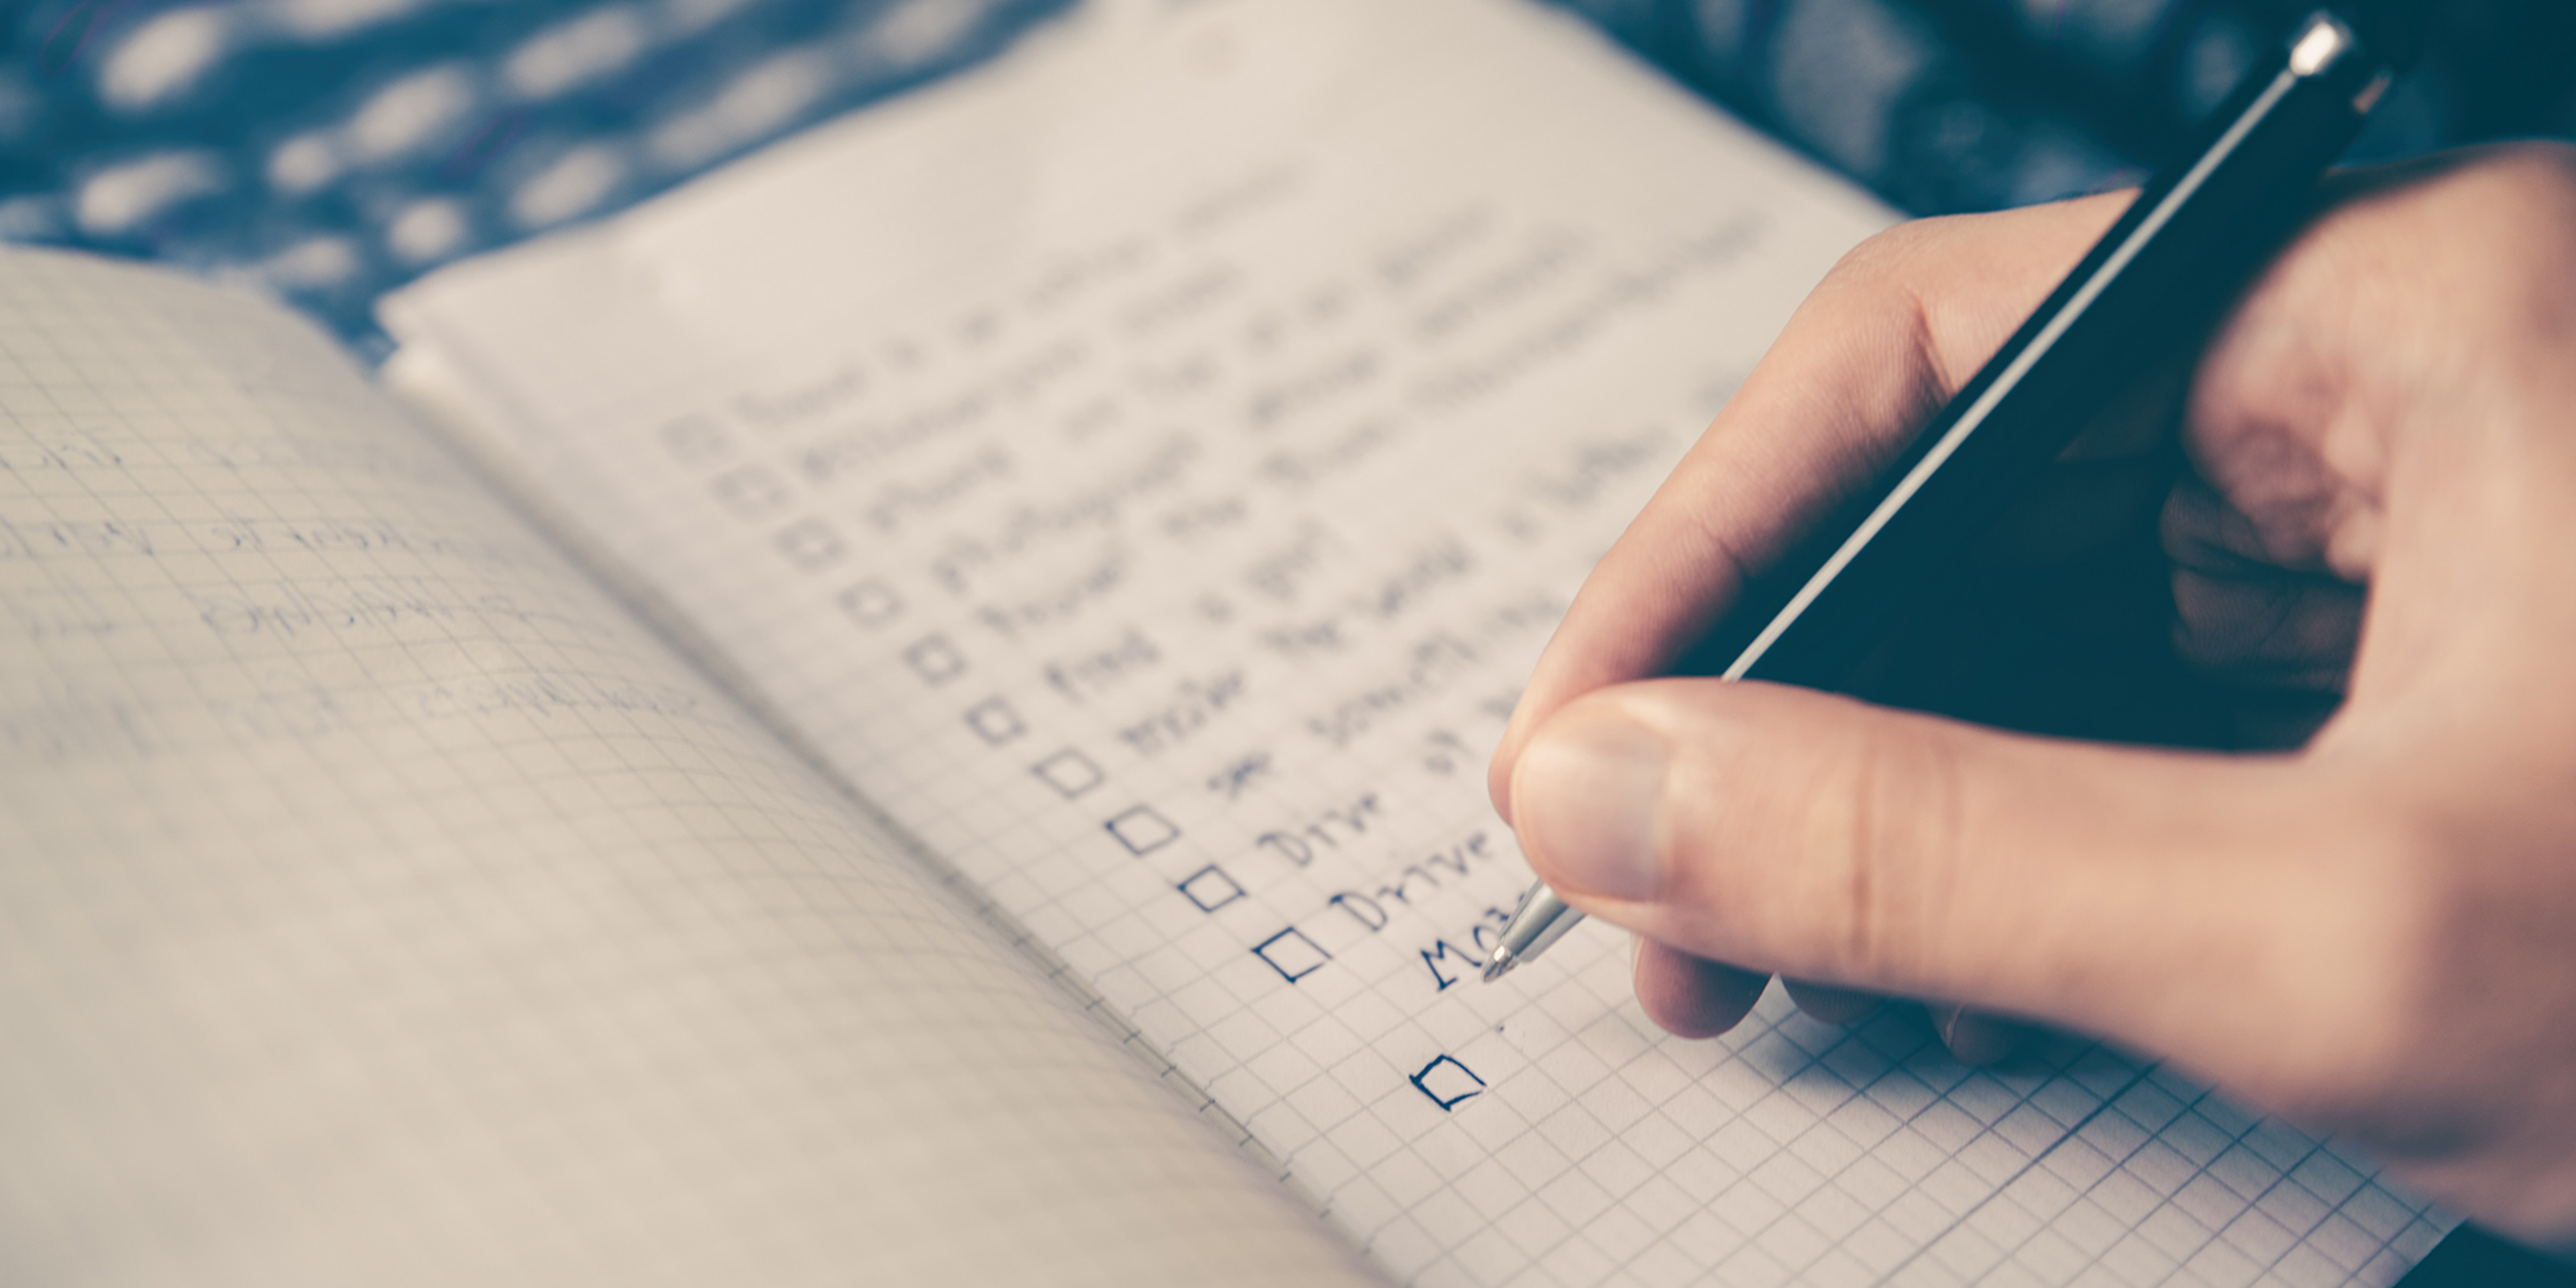 Why Do You Need to Know About the HHSRS Checklist?